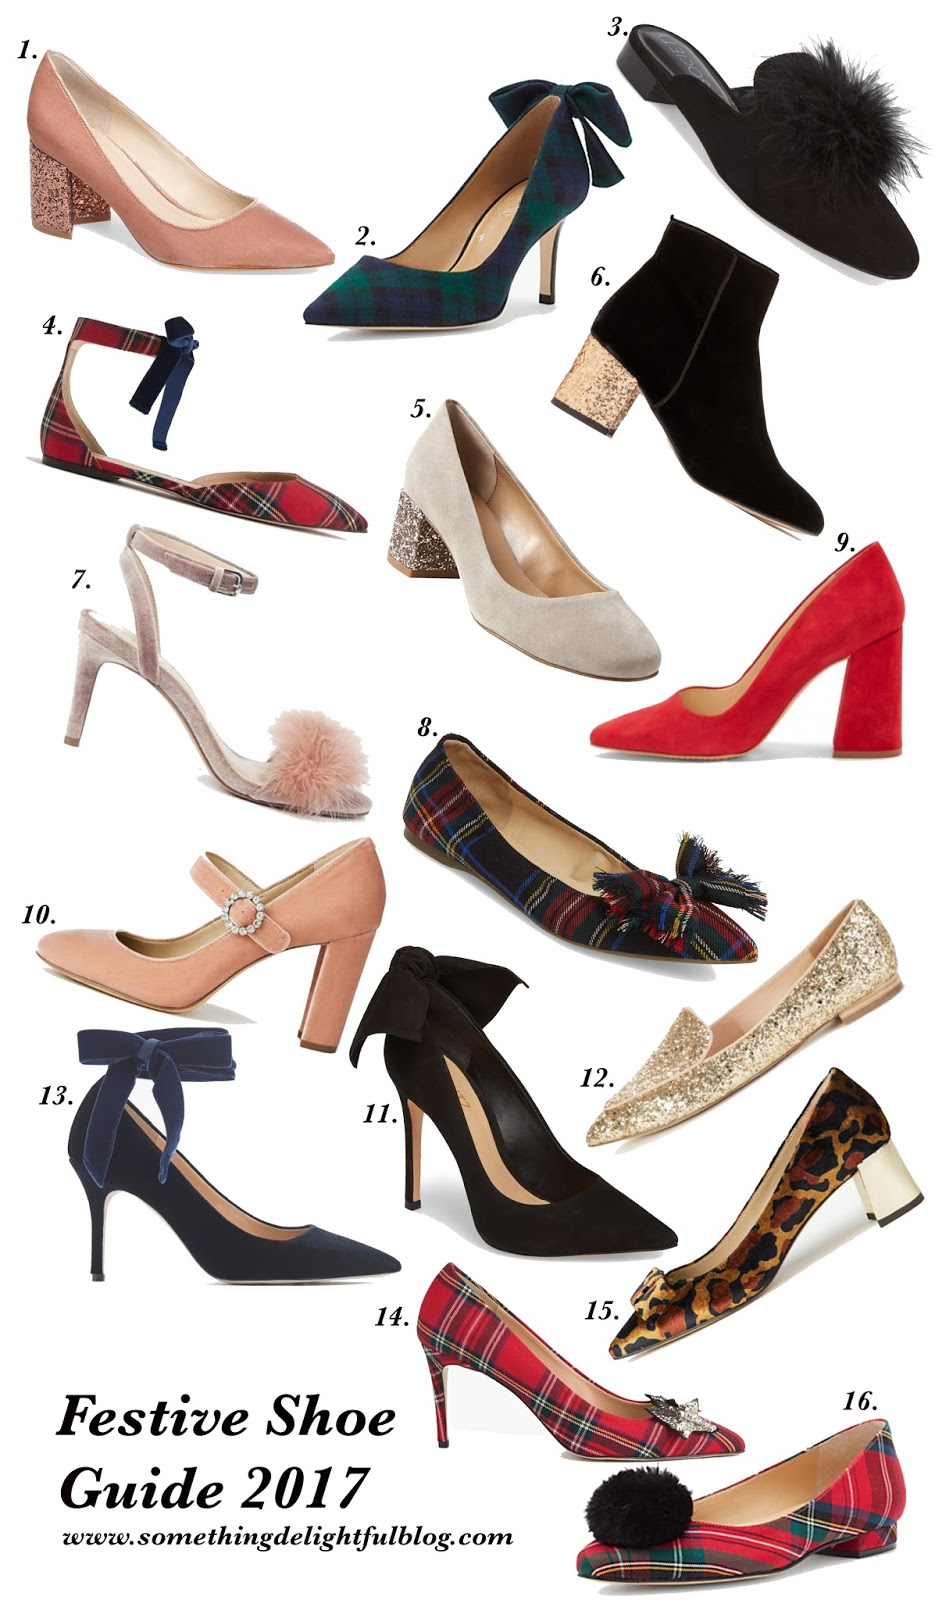 Festive Shoe Guide - Something Delightful Blog